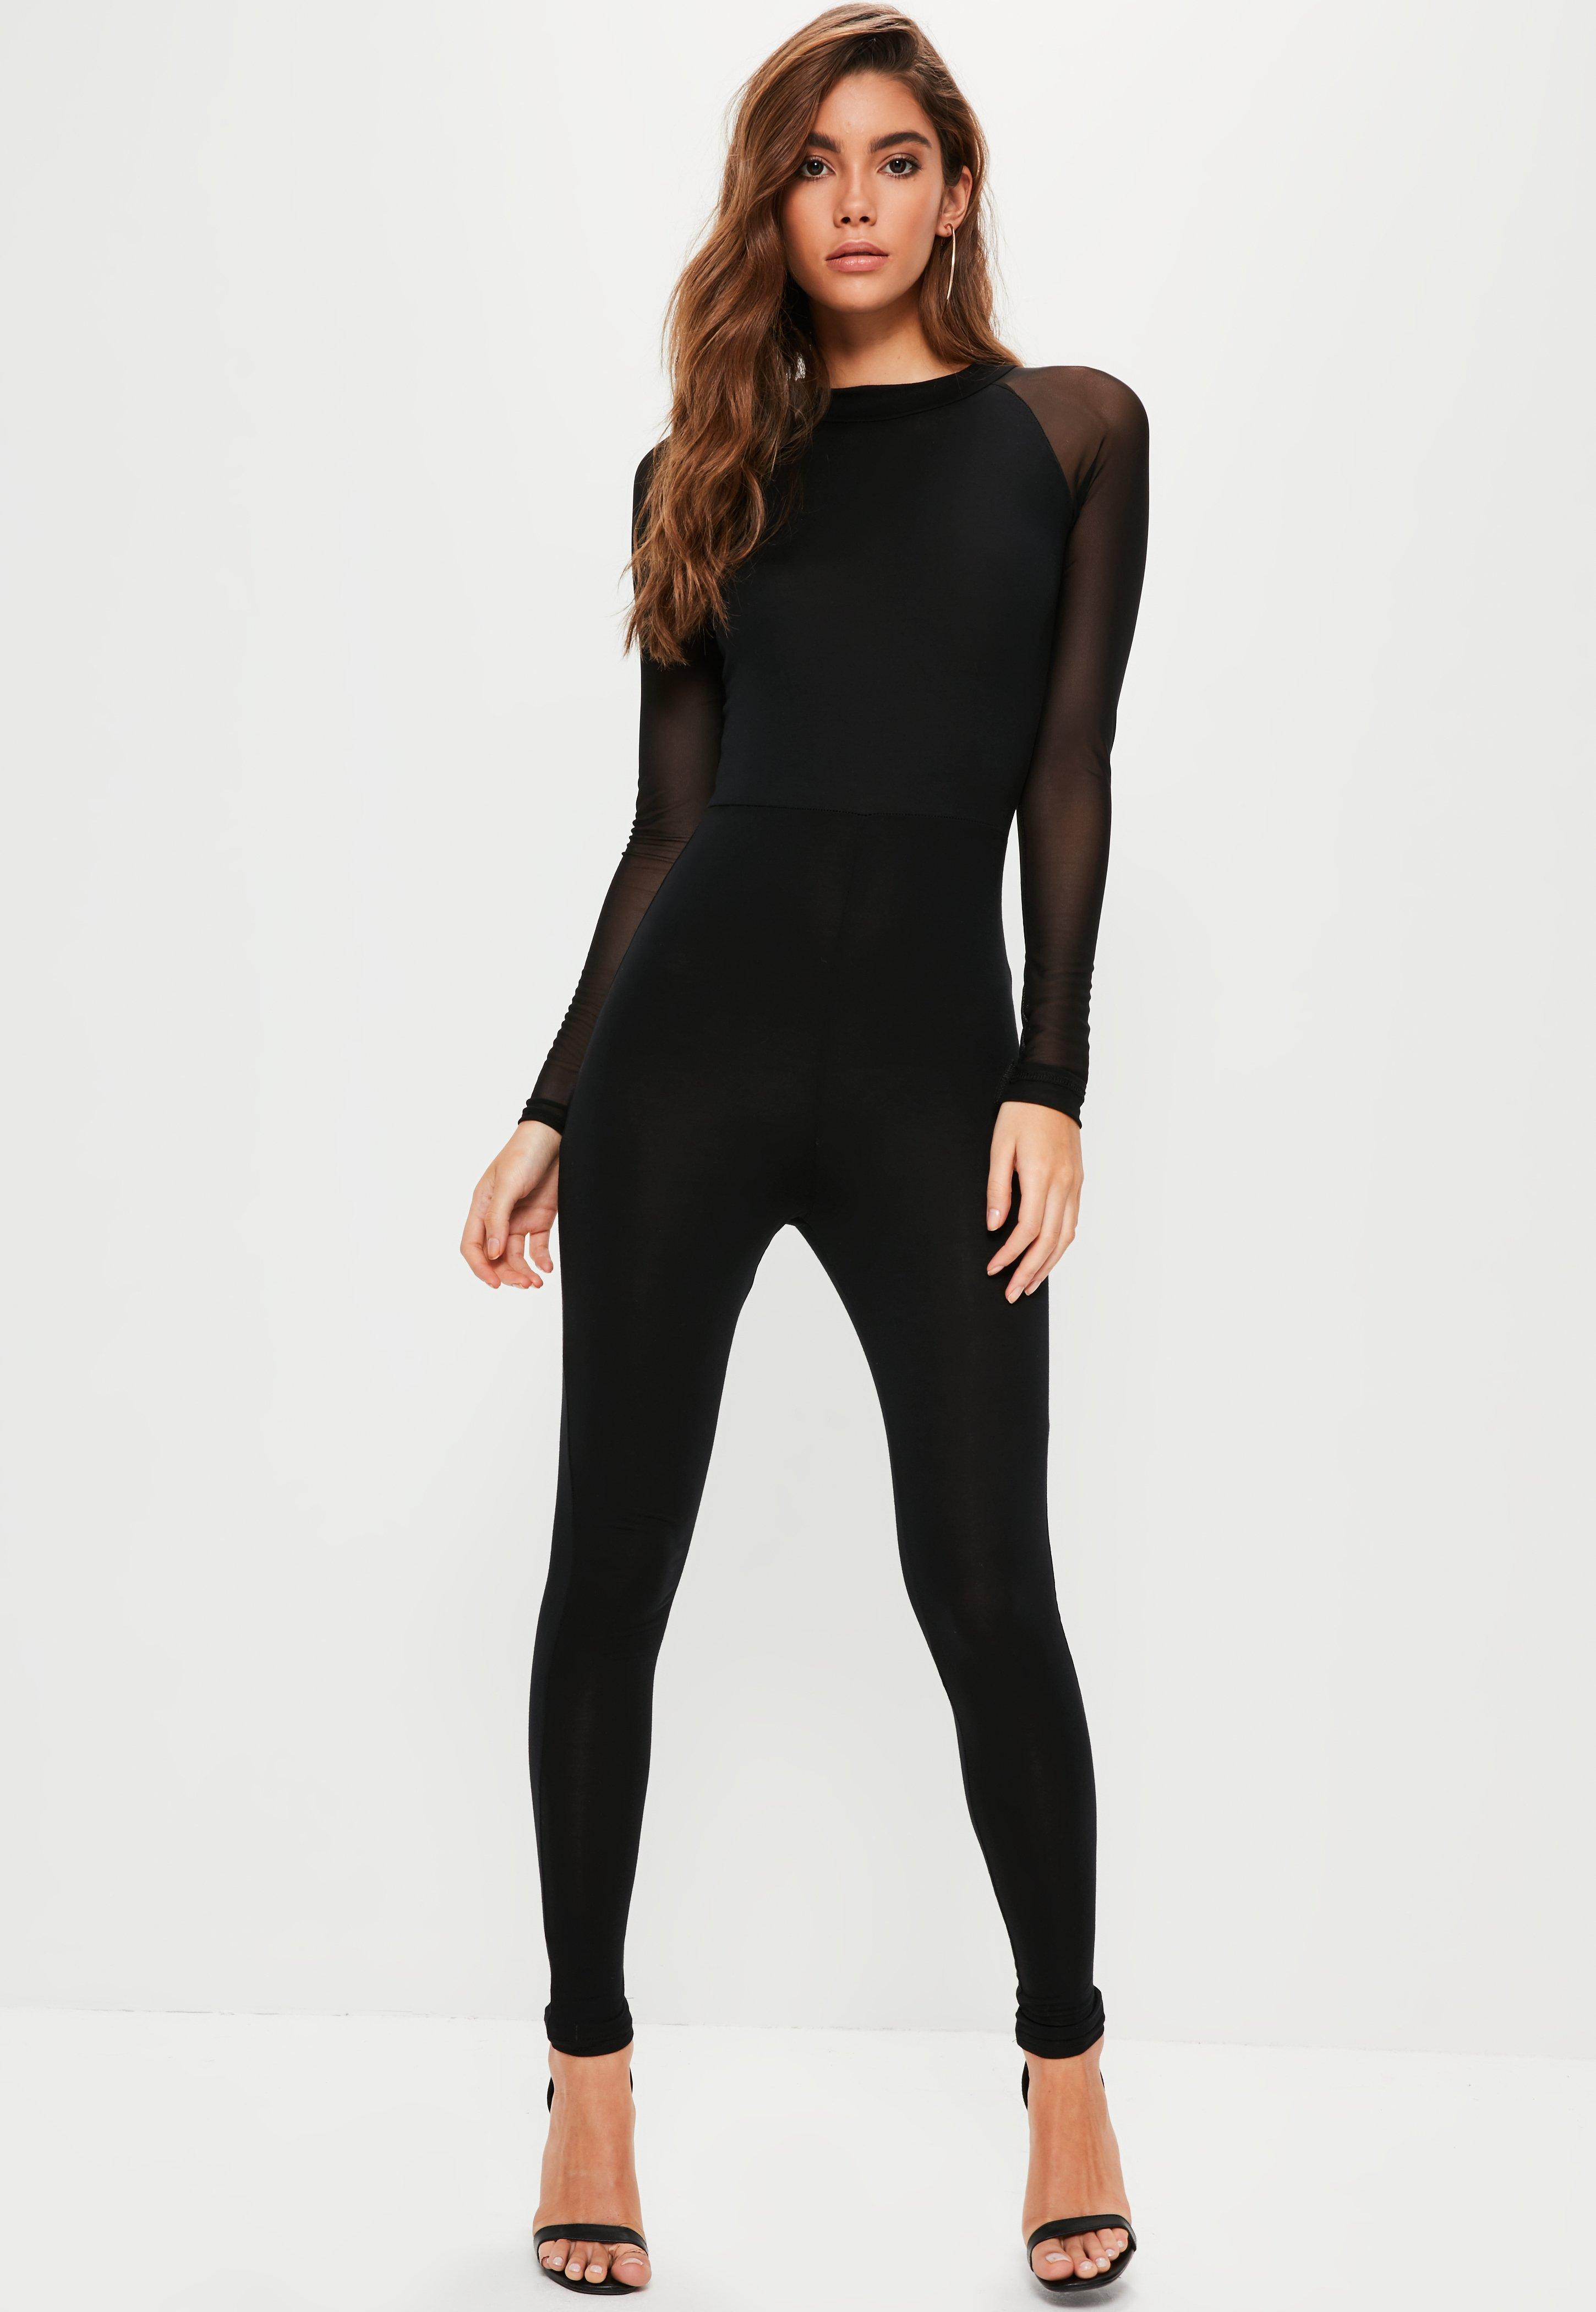 Missguided Black Mesh Sleeve Jersey Unitard Jumpsuit in ...